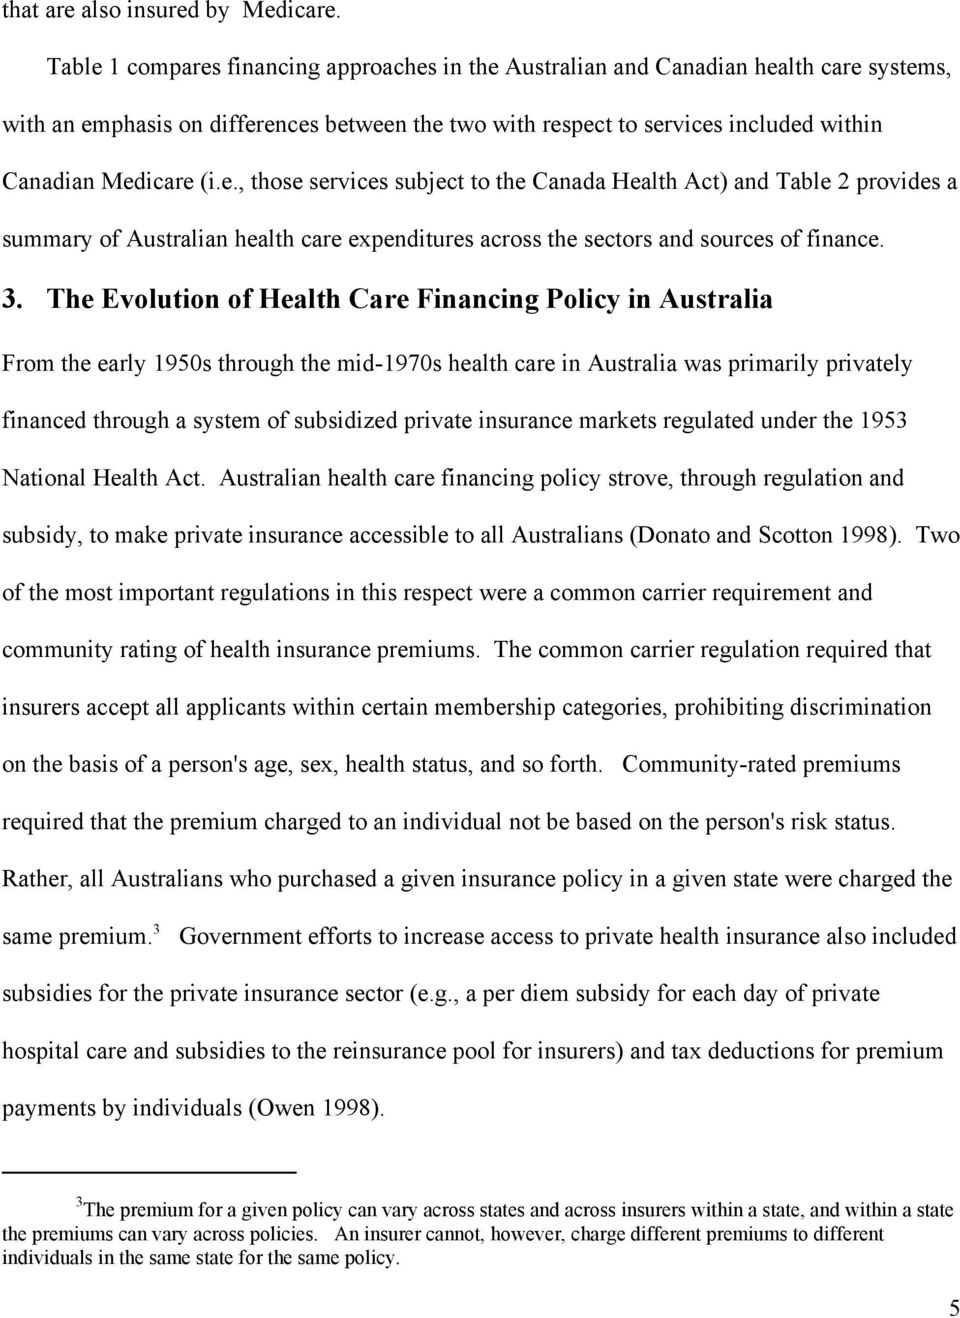 e., those services subject to the Canada Health Act) and Table 2 provides a summary of Australian health care expenditures across the sectors and sources of finance. 3.